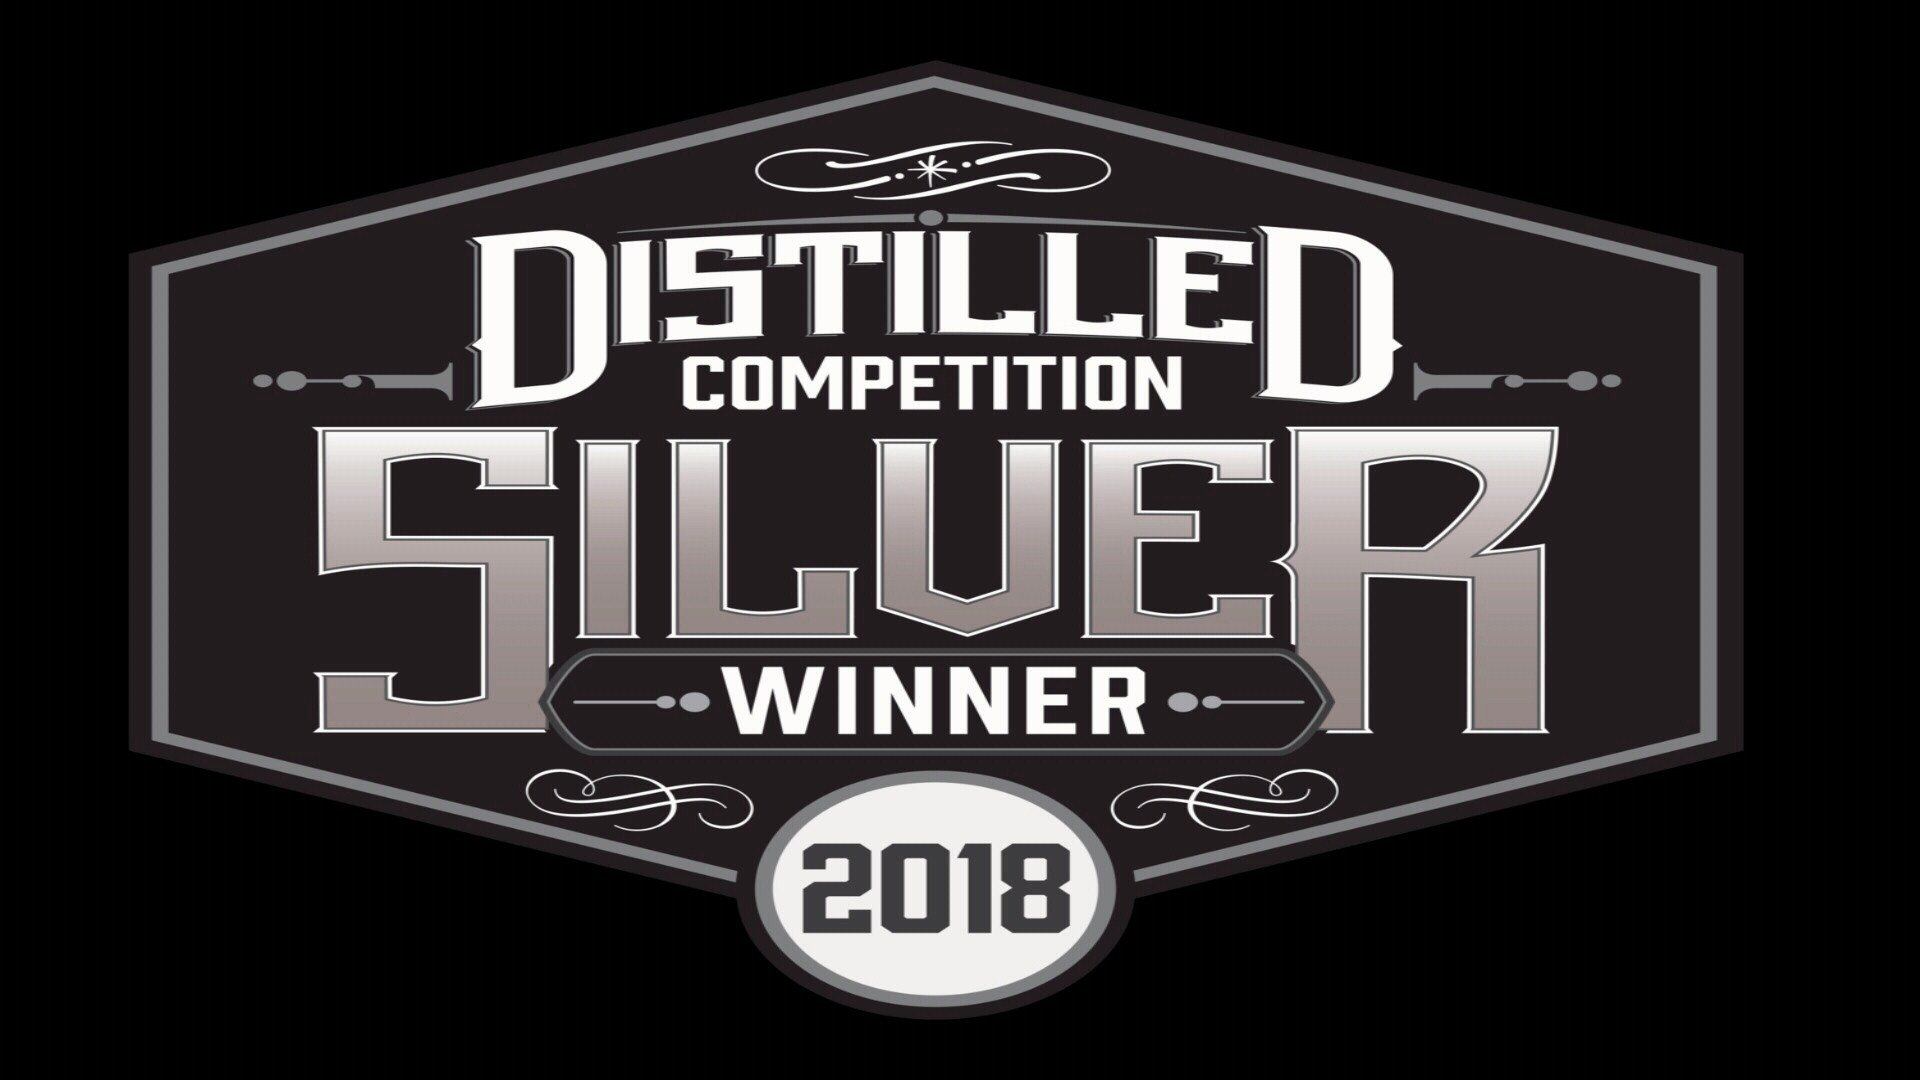 The Silver Medal awarded to South Texas Distilleries